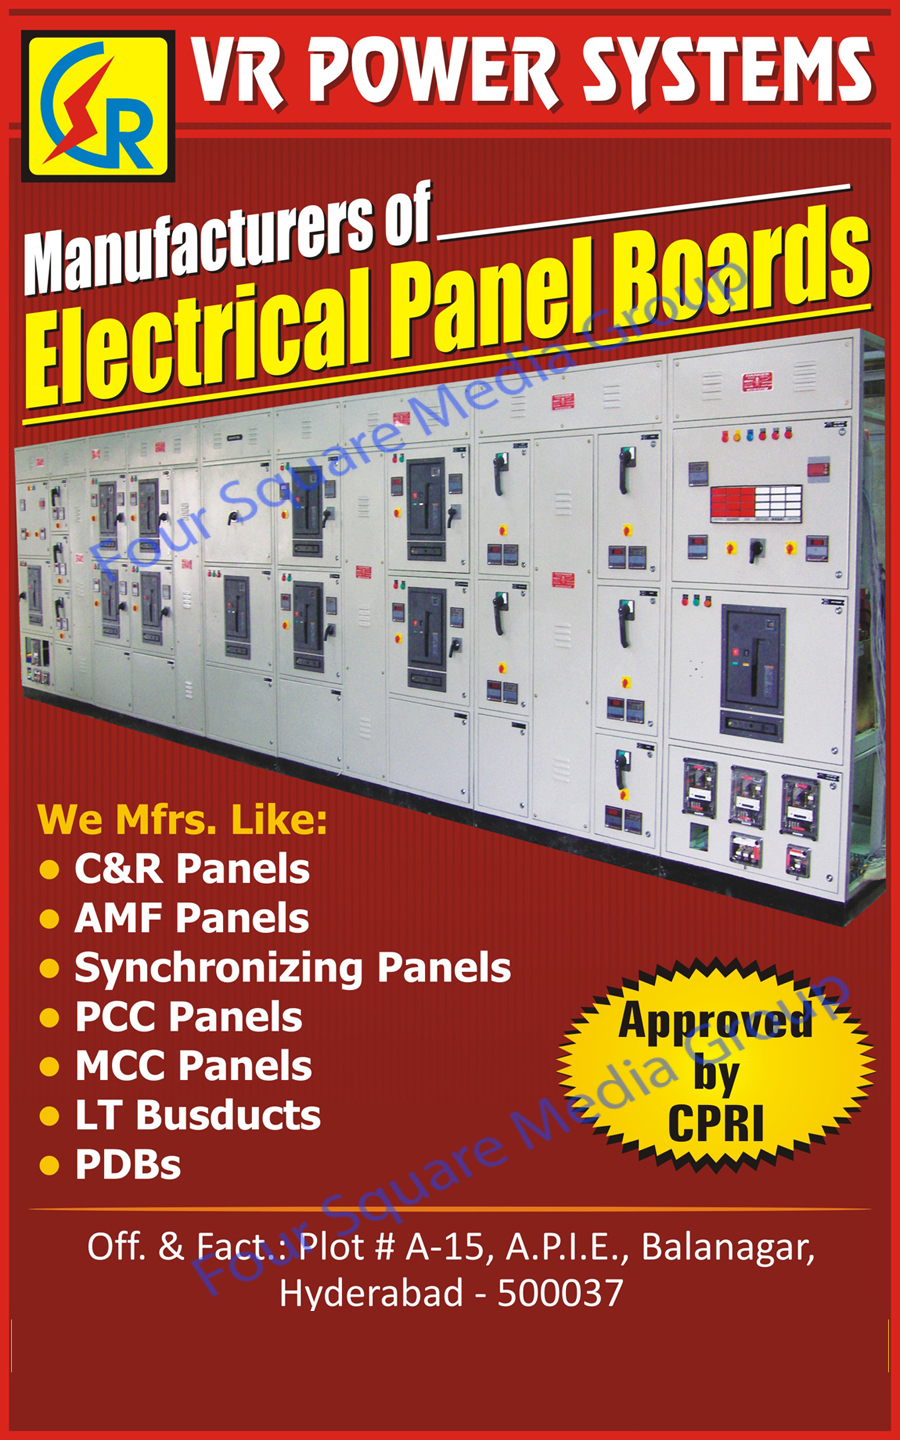 Electrical Panel Boards, C Panels, R Panels, AMF Panels, Synchronizing Panels, PCC Panels, MCC Panels, LT Bus ducts, PDBs